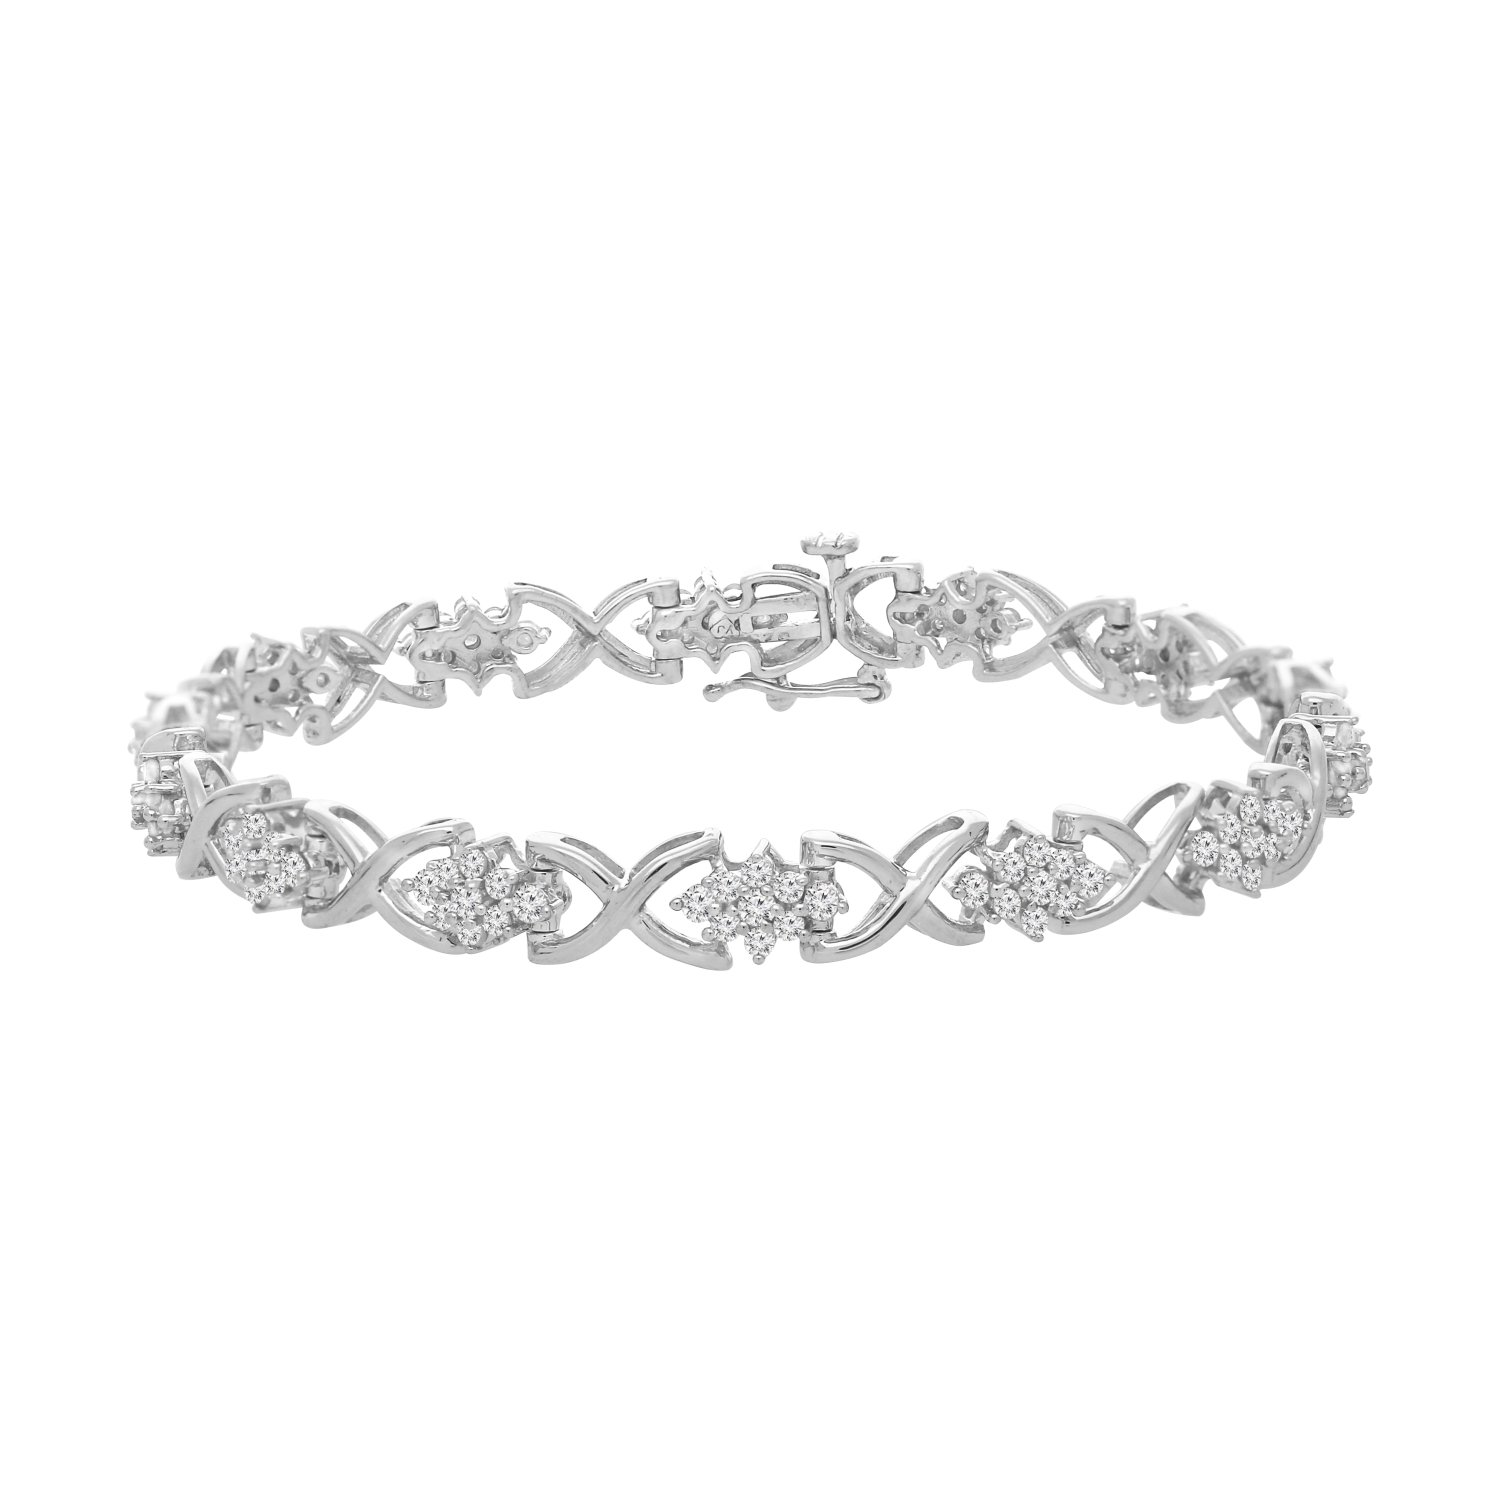 Sterling Silver Round Cut Diamond Bracelet (2.25 cttw, I-J Color, I2-I3 Clarity) by Original Classics